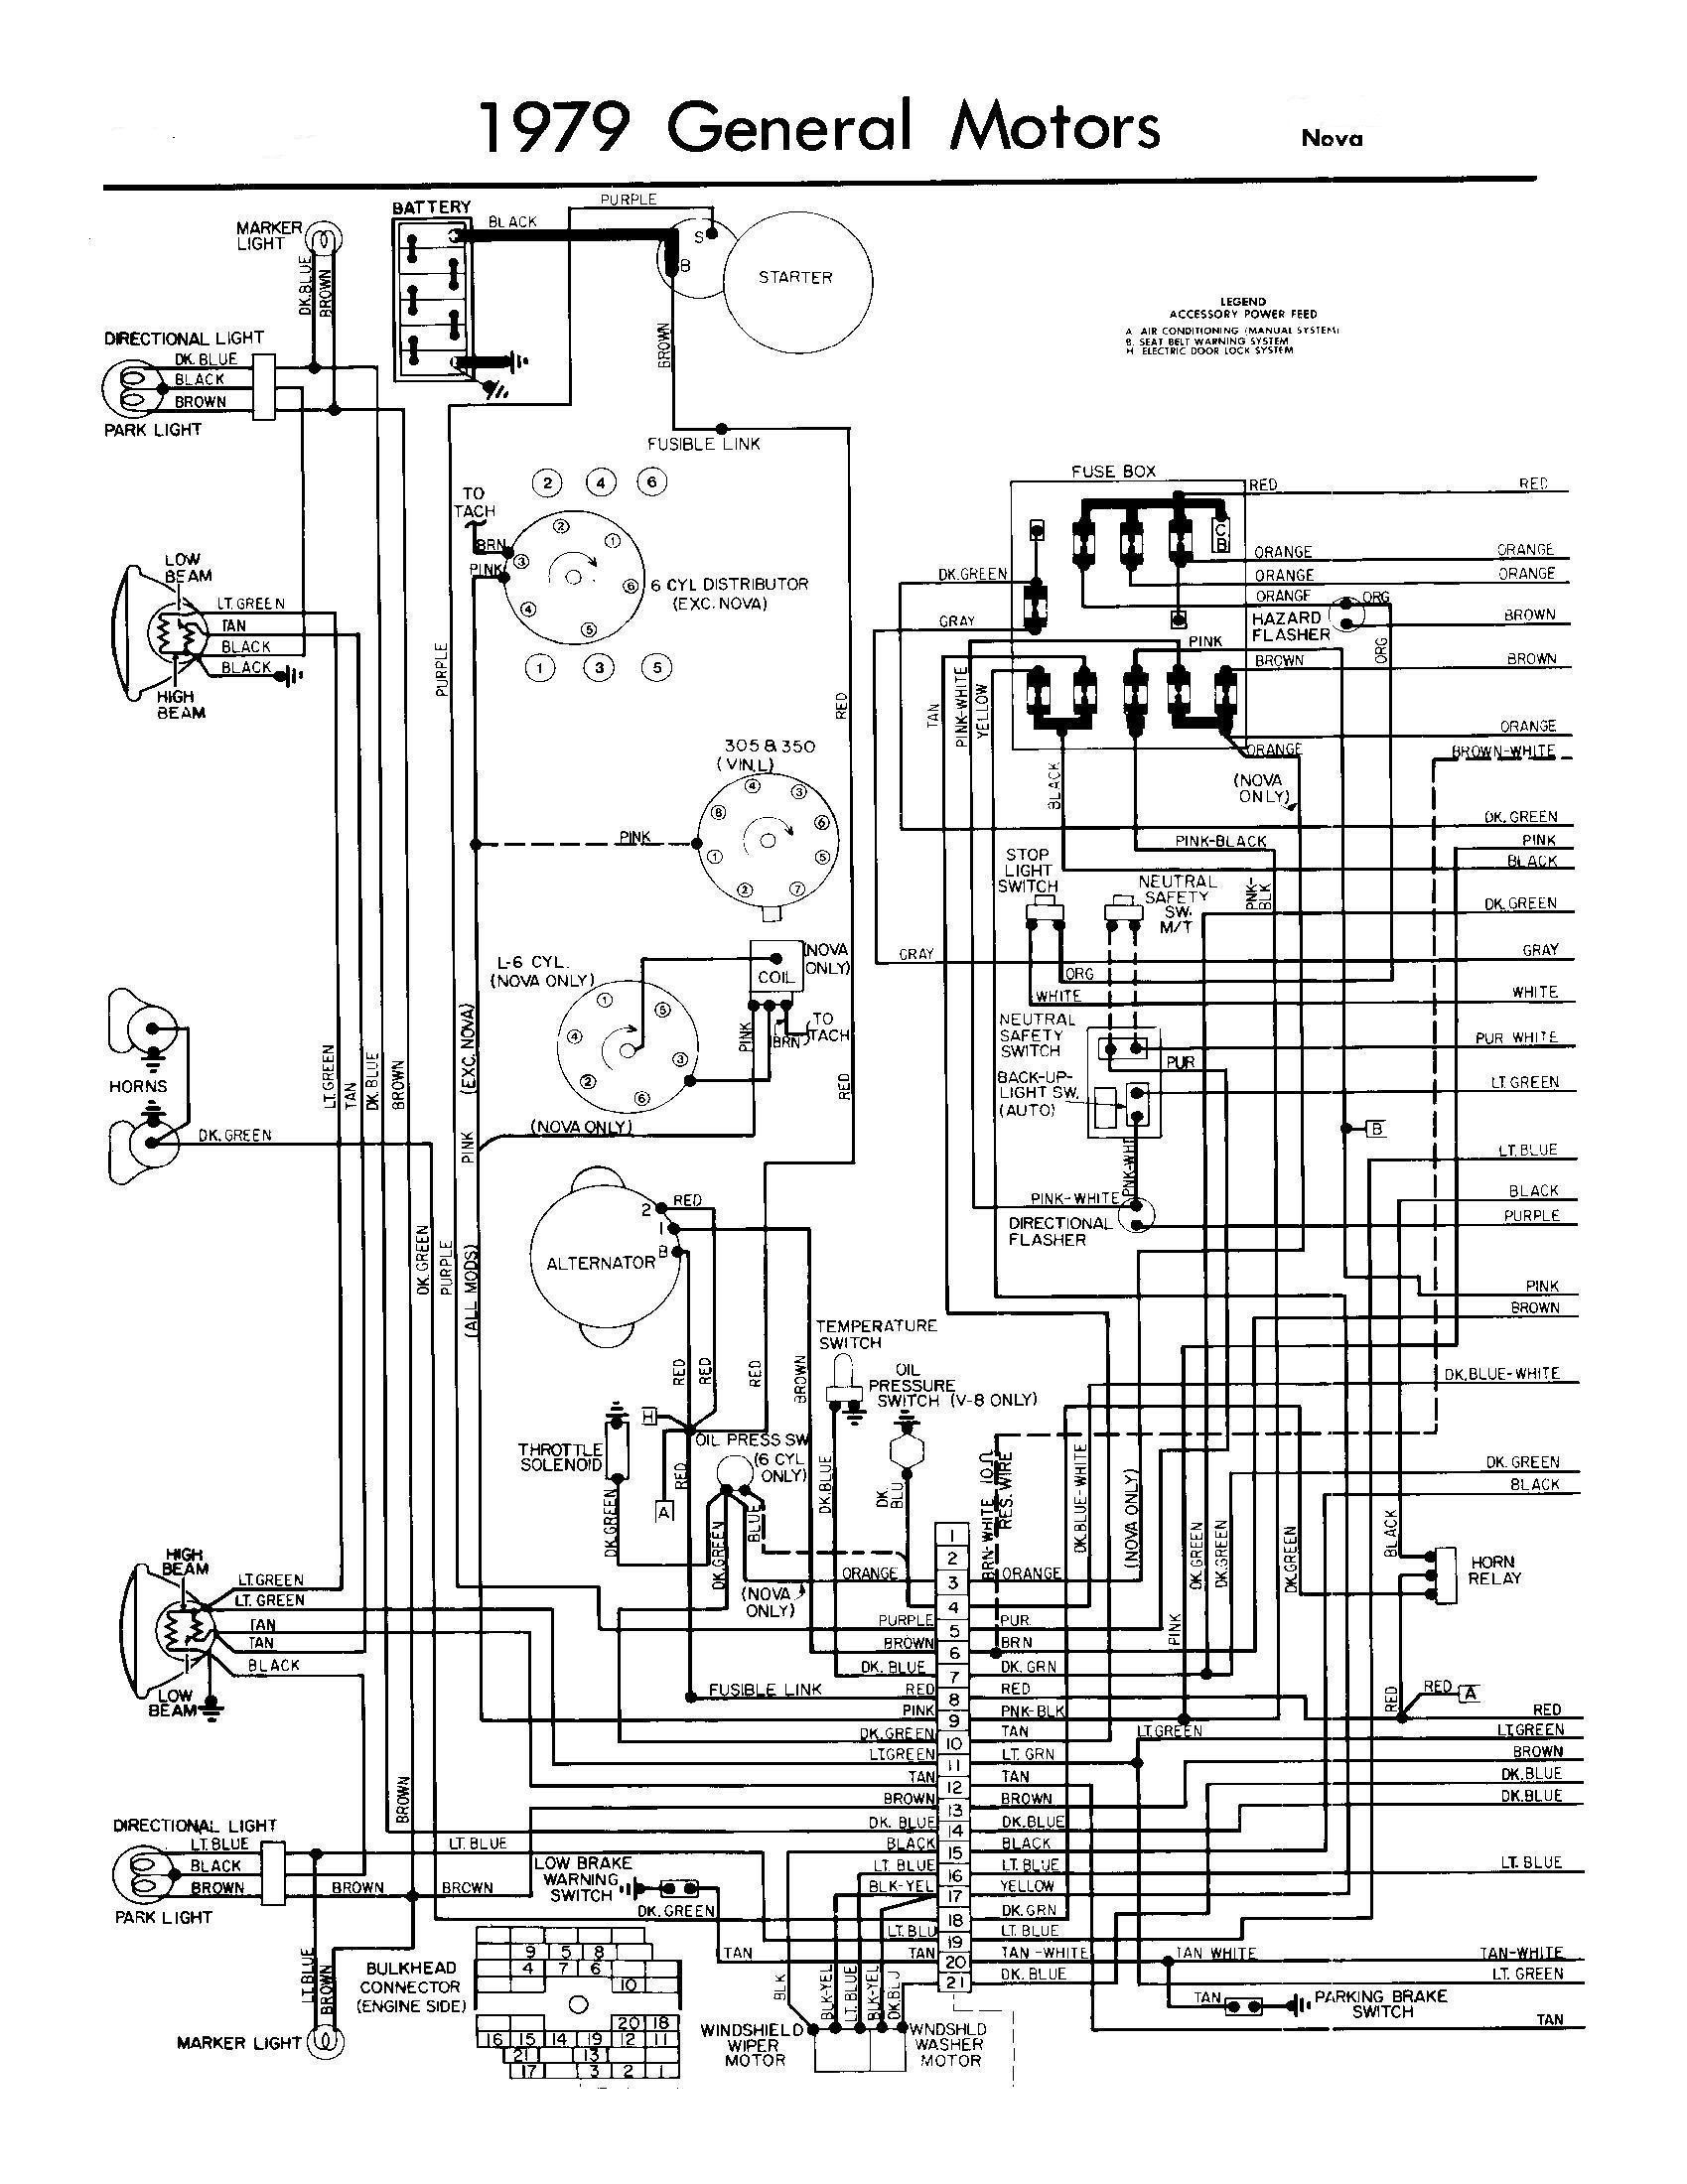 1987 chevrolet engine diagram free download example electrical rh huntervalleyhotels co